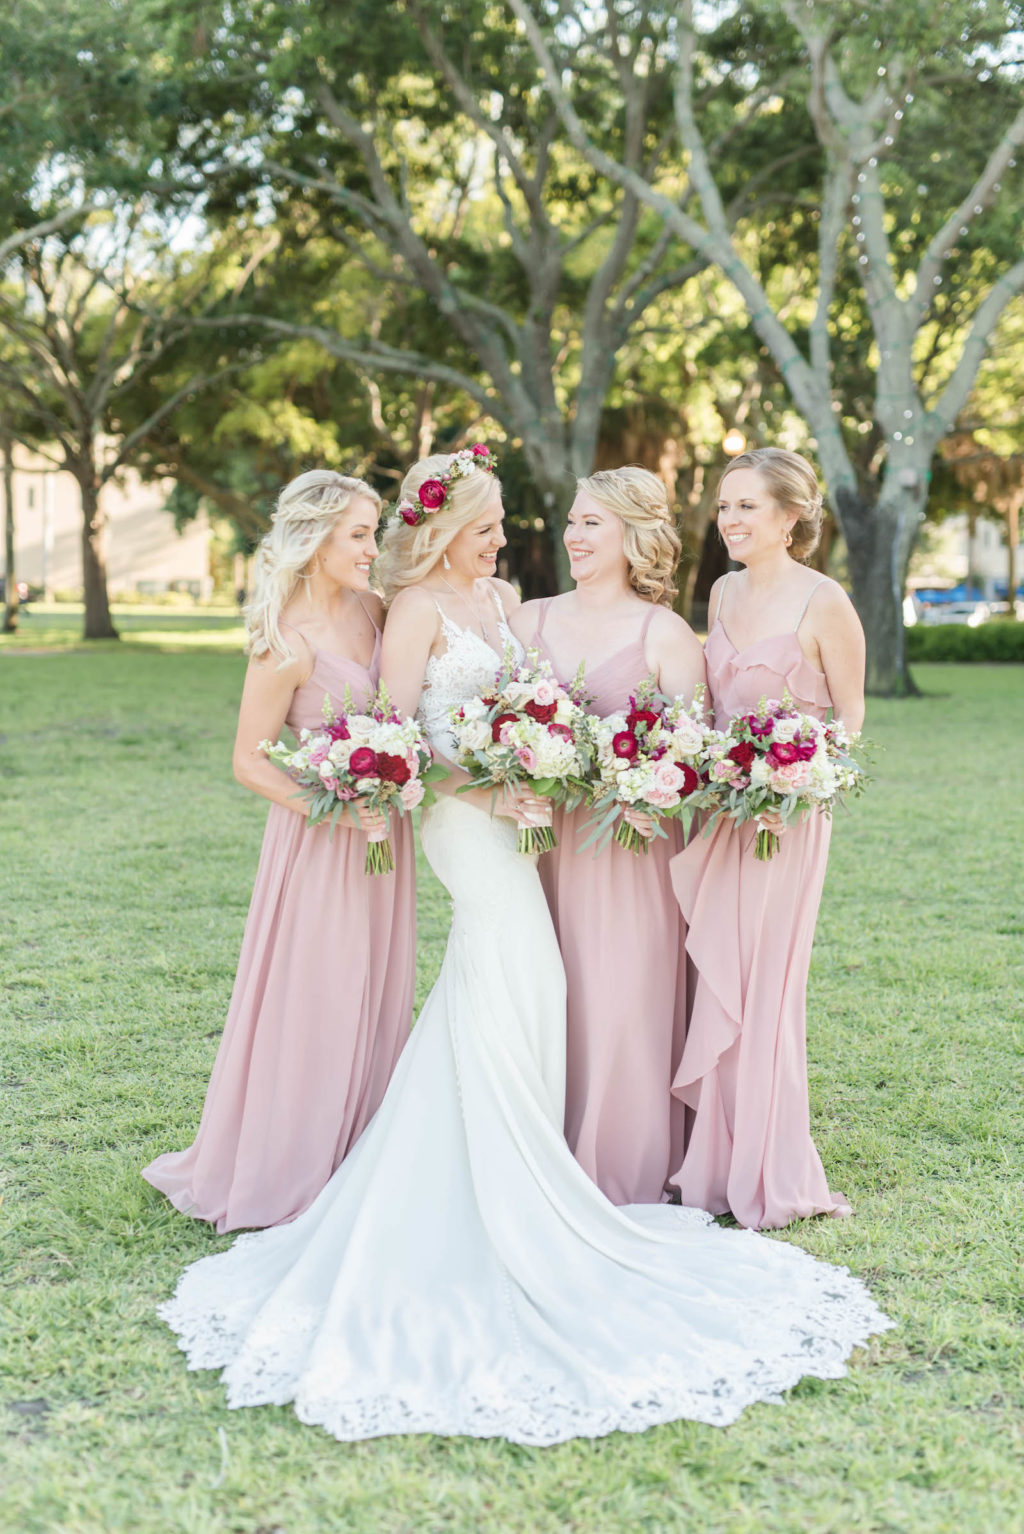 Bride and Bridesmaids Portraits | Blush Pink Dusty Rose Mismatched Chiffon Bridesmaid Dresses | Stella York Lace Sheath Spaghetti Strap Empire Waist Wedding Dress Bridal Gown | Bride Wedding Bouquet and Halo Crown with Blush Pink Dusty and Burgundy Rose Garden Roses, Snapdragons, Stock, and Eucalyptus Greenery